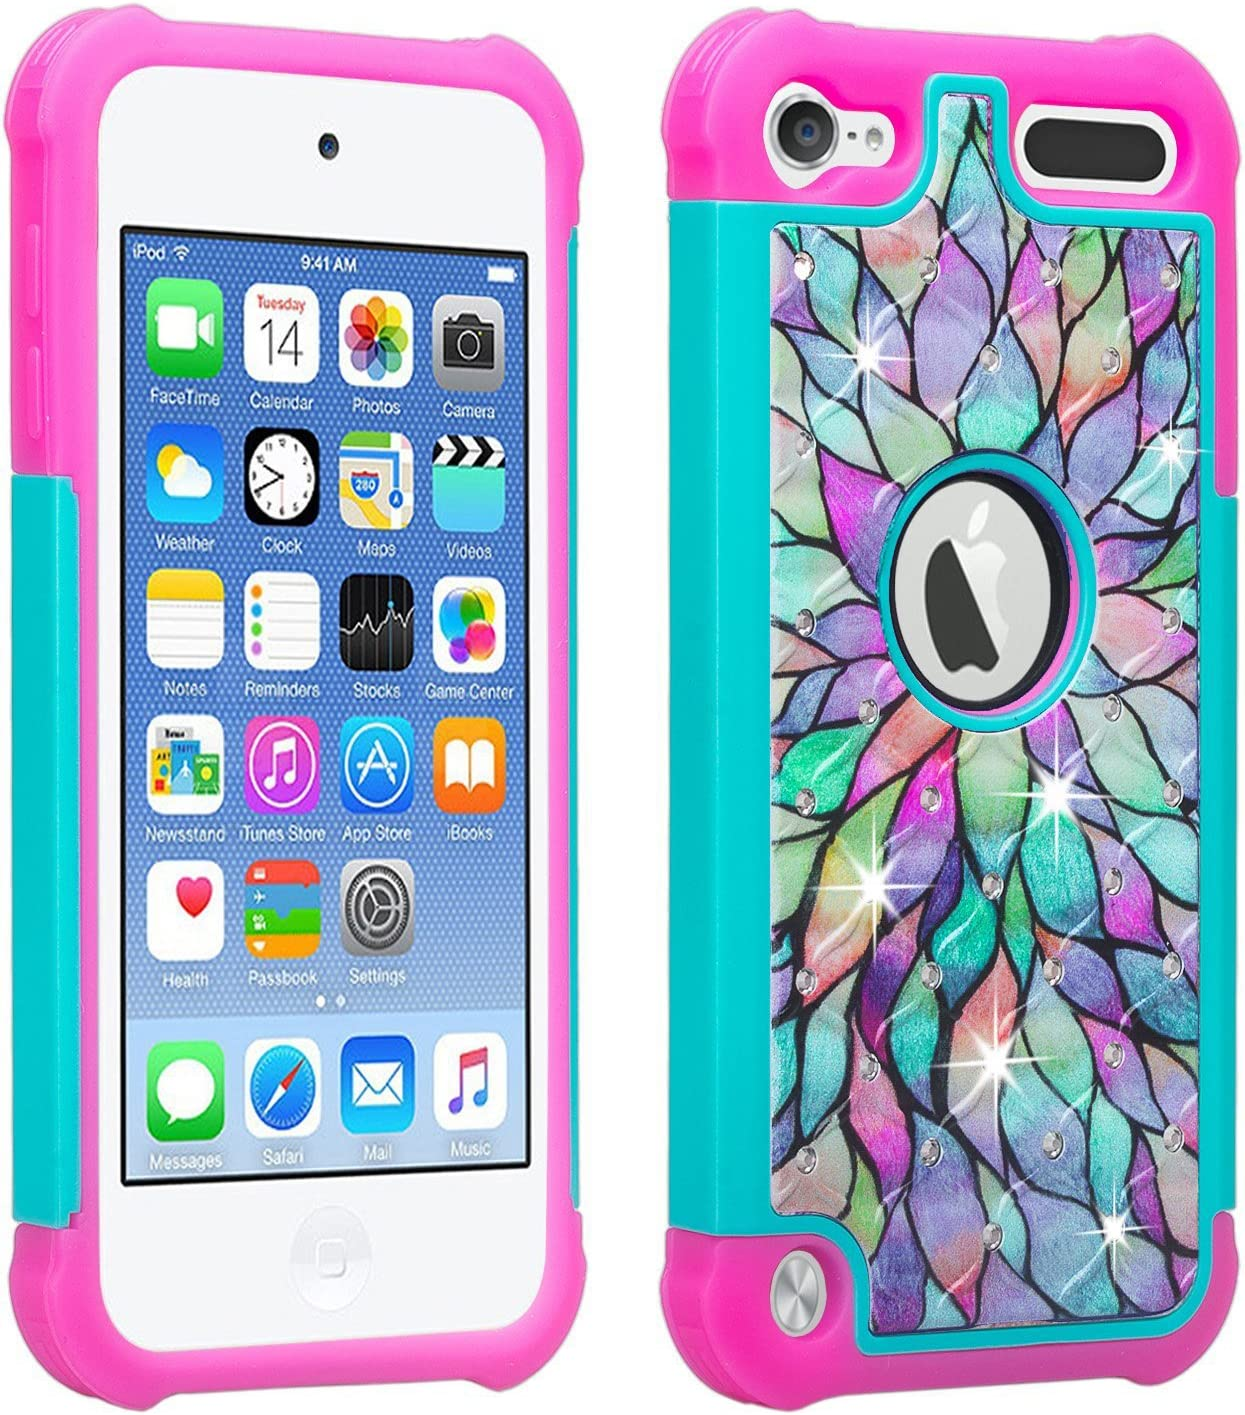 Wydan Compatible iPod Touch Case, Studded Hybrid Bling Diamond Shockproof Cover for Girls Kids - iPod Touch 7th, 6th, 5th Gen Generation Cover